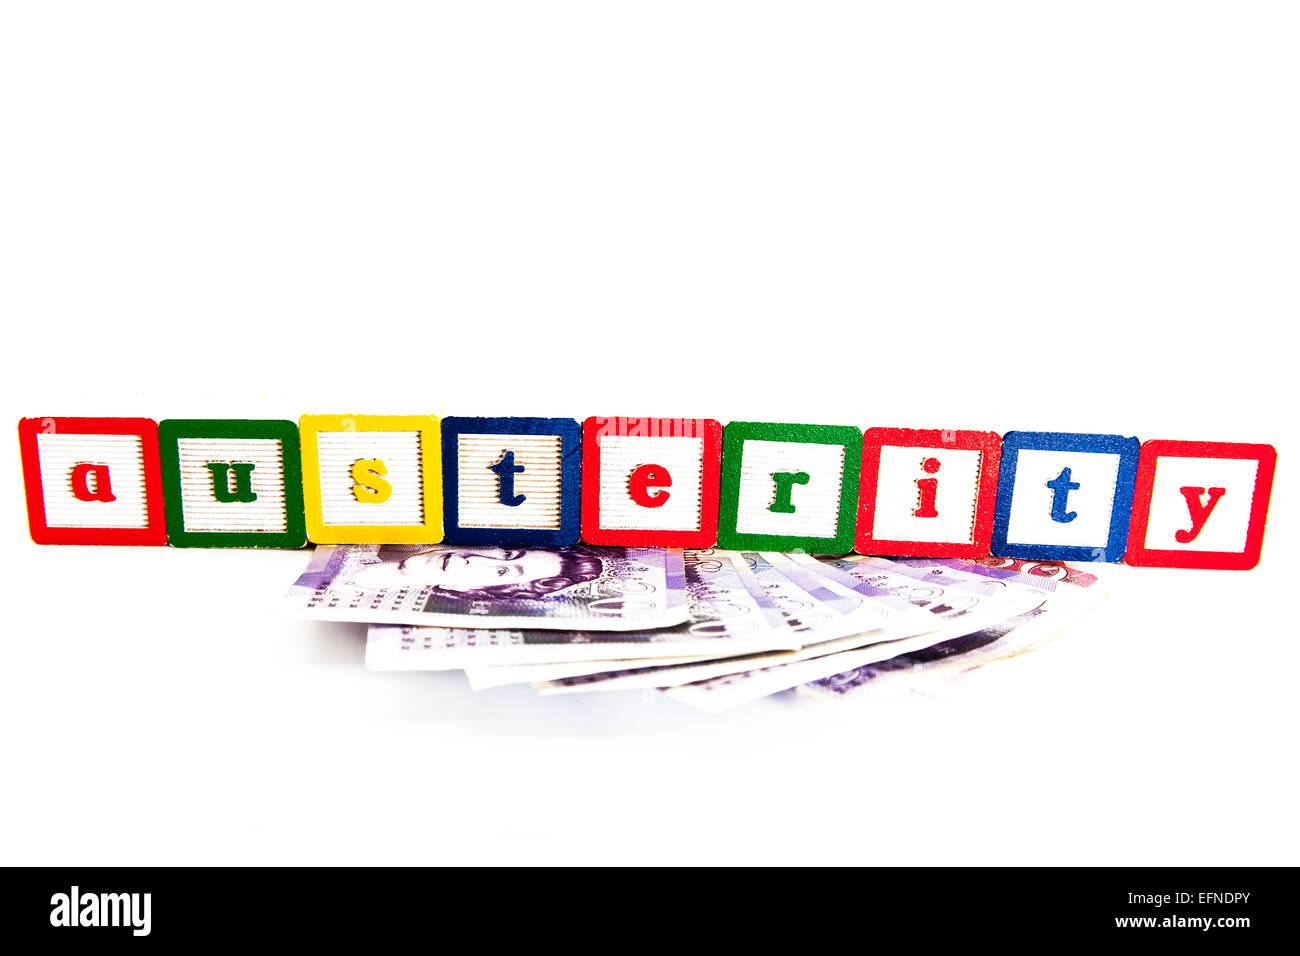 Austerity measures funds Greek crisis government saving money cut backs save reduce outgoings cut out copy space - Stock Image